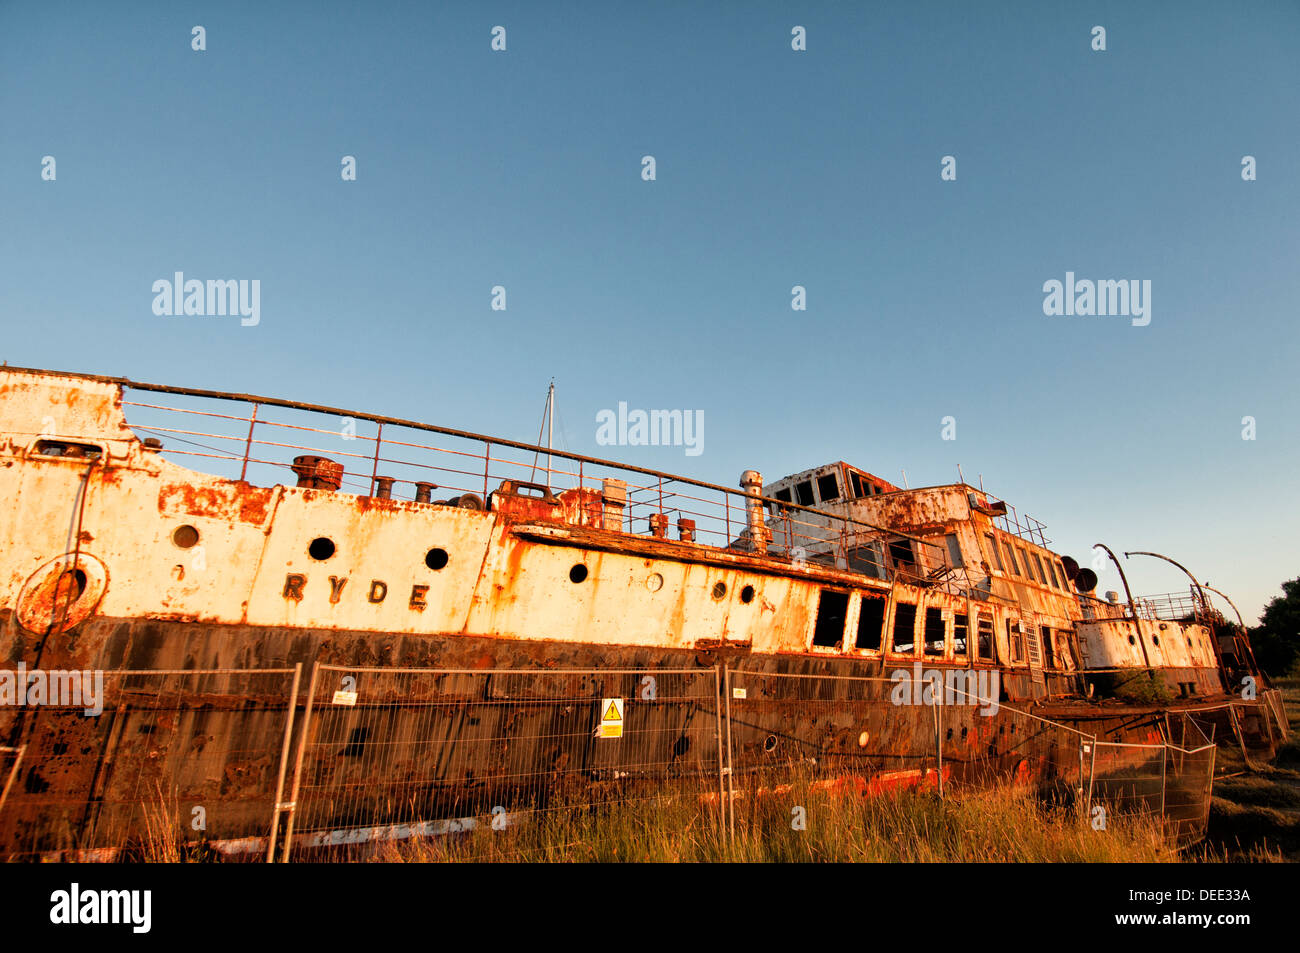 wreck of the paddle steamer Ryde on the Isle of Wight - Stock Image